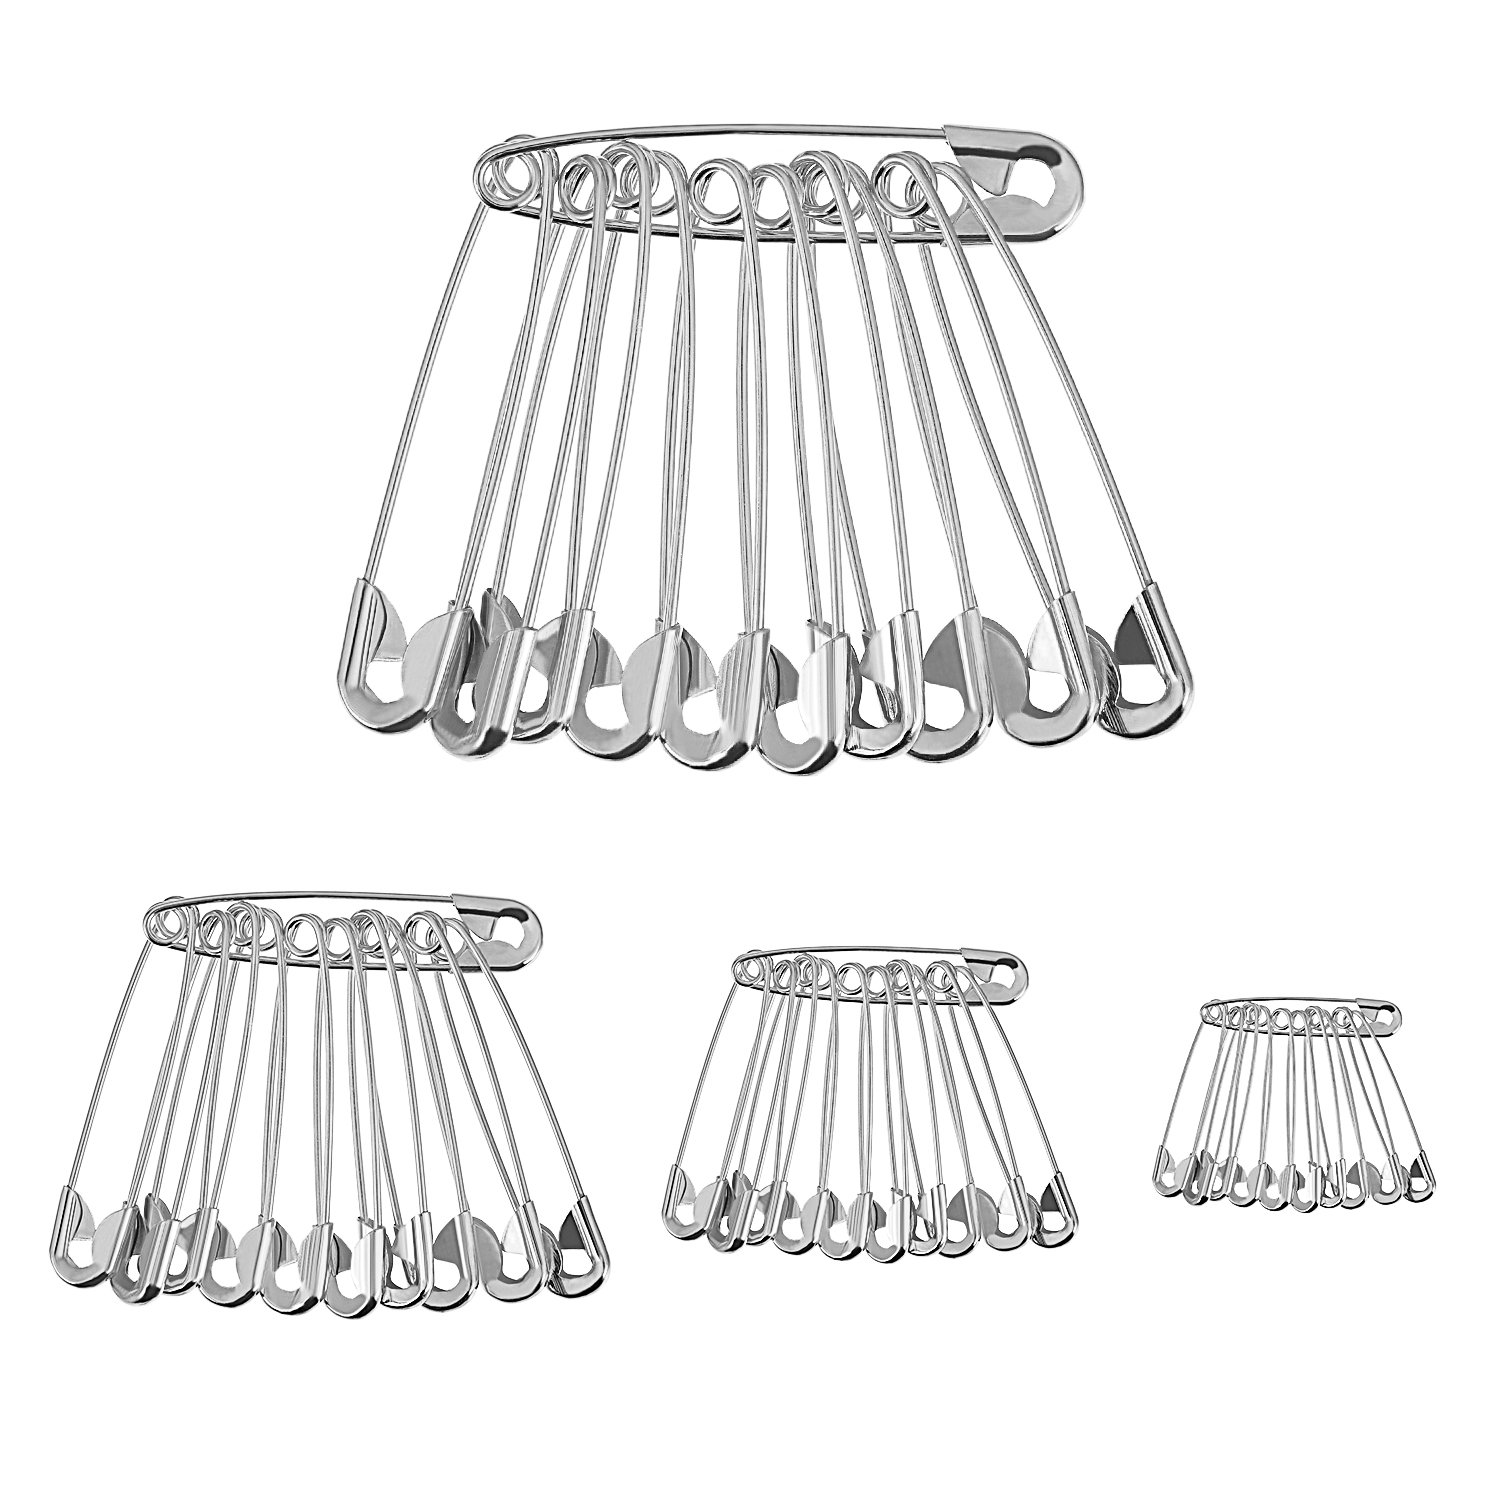 300 Pieces Heavy Duty Safety Pins with 4 Sizes (19 mm, 28 mm, 38 mm, 50 mm) for Clothing, Crafts, Art, Skirts and Blanket BBTO 4337009829